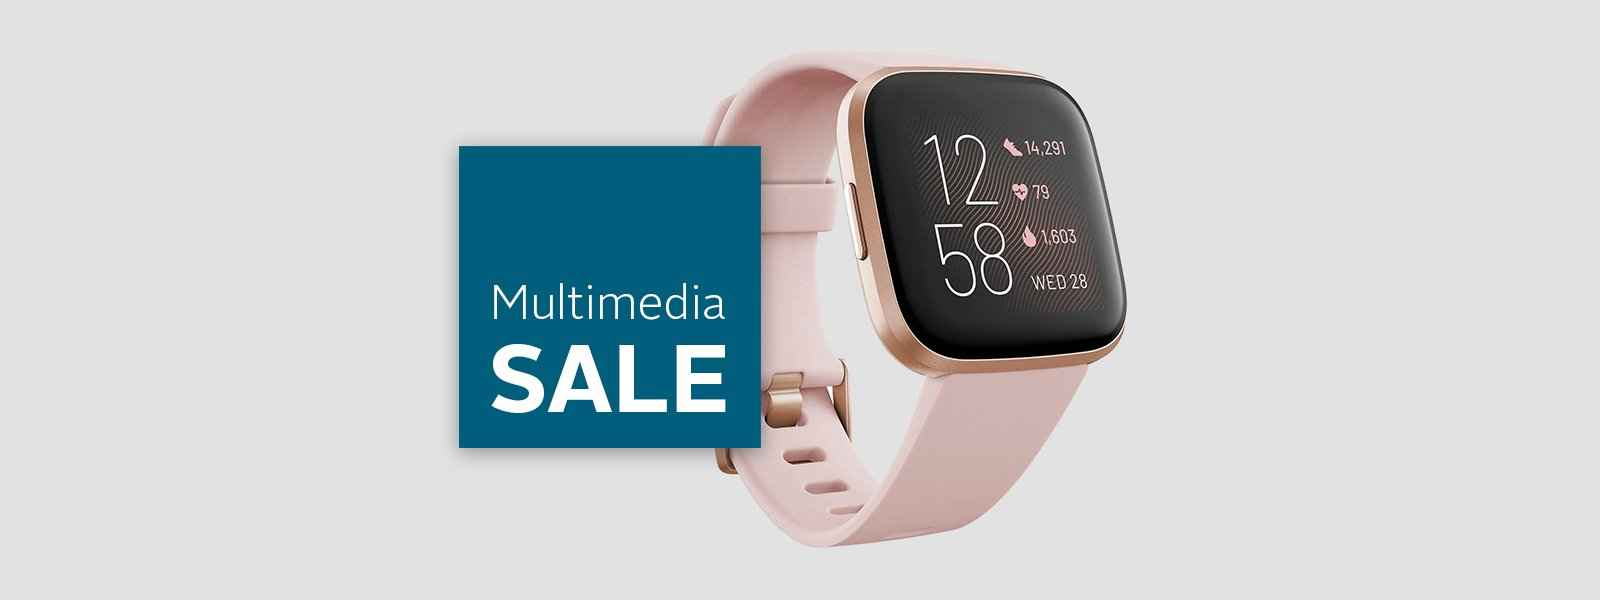 Multimedia SALE